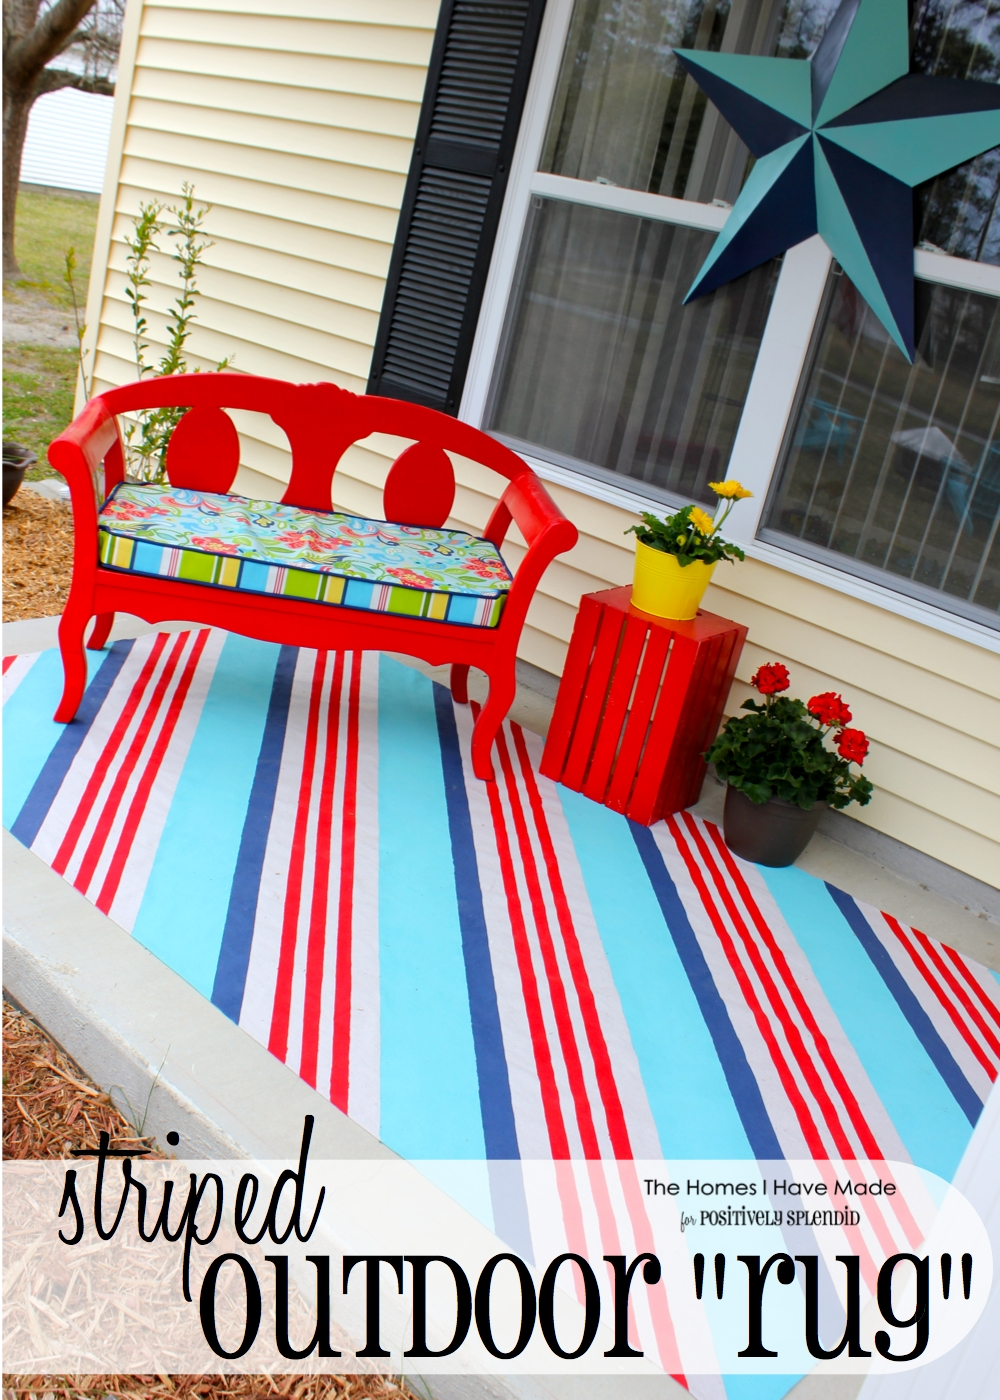 rug faith travel parties diy home family perfect bliss taping less than sm for measuring outdoor life of